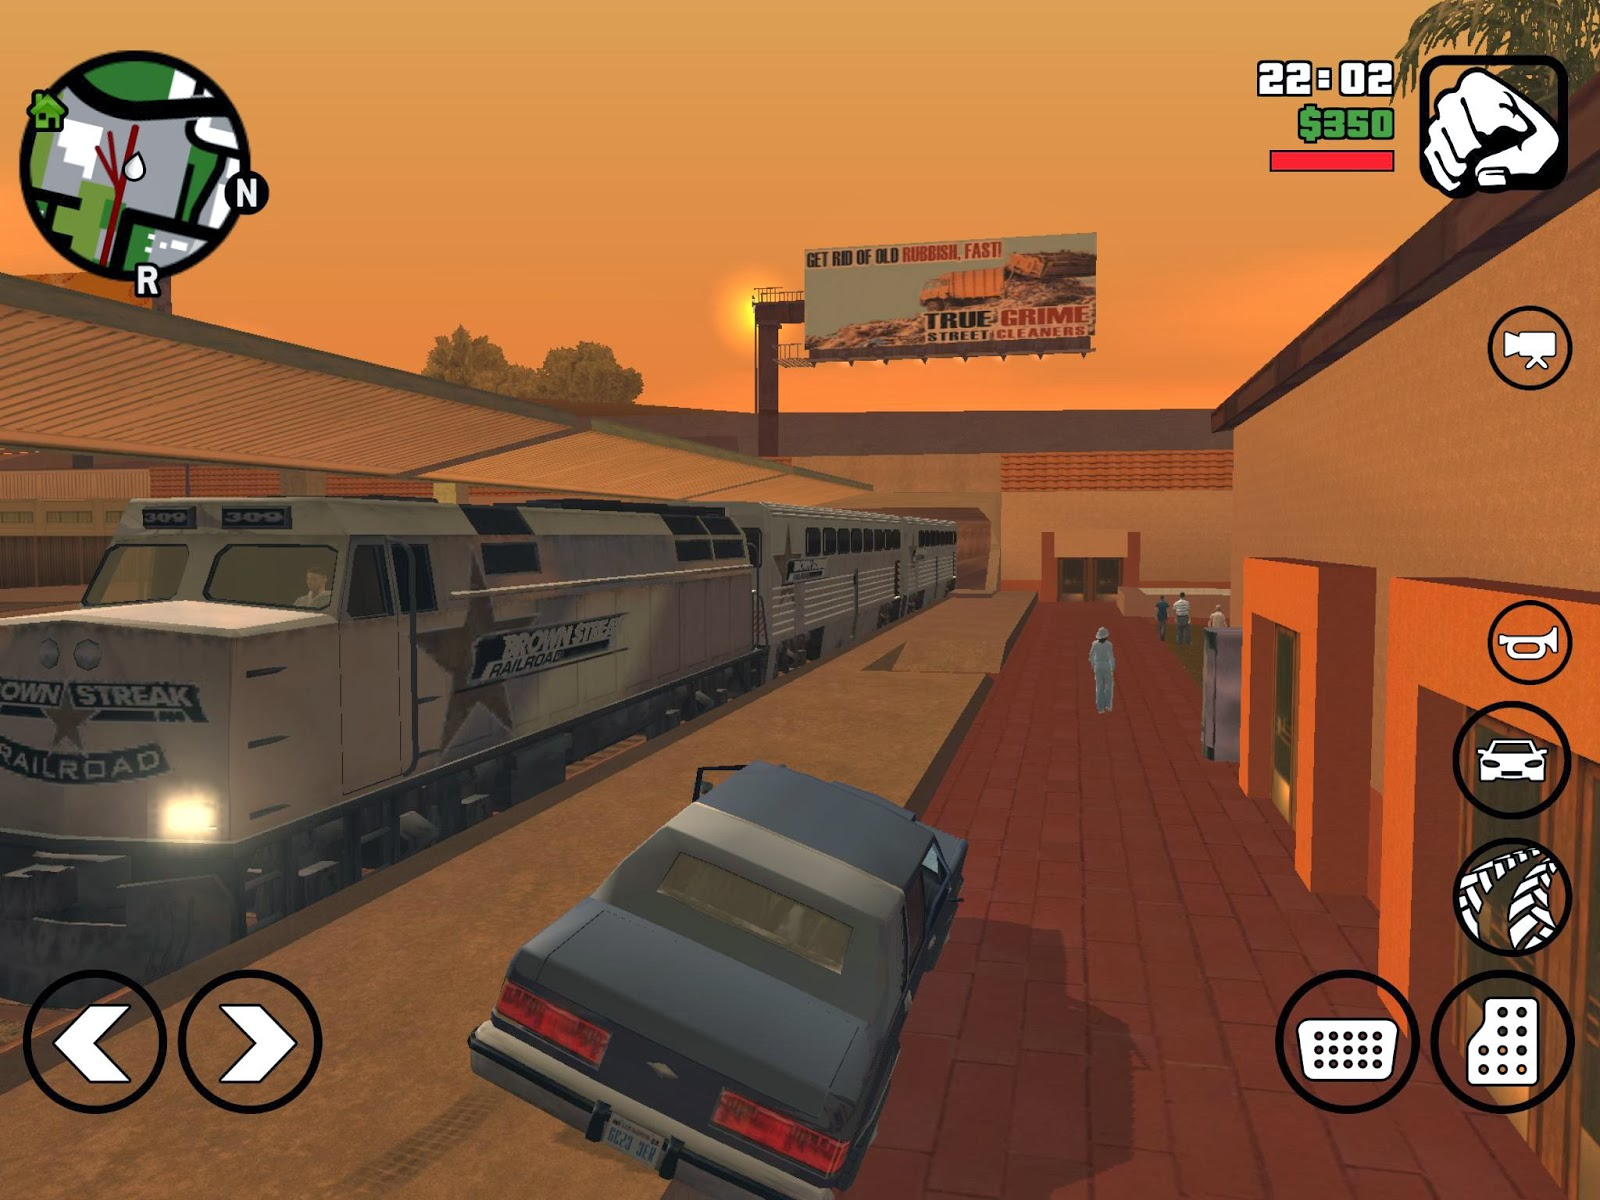 gta game for android 4.2 2 free download